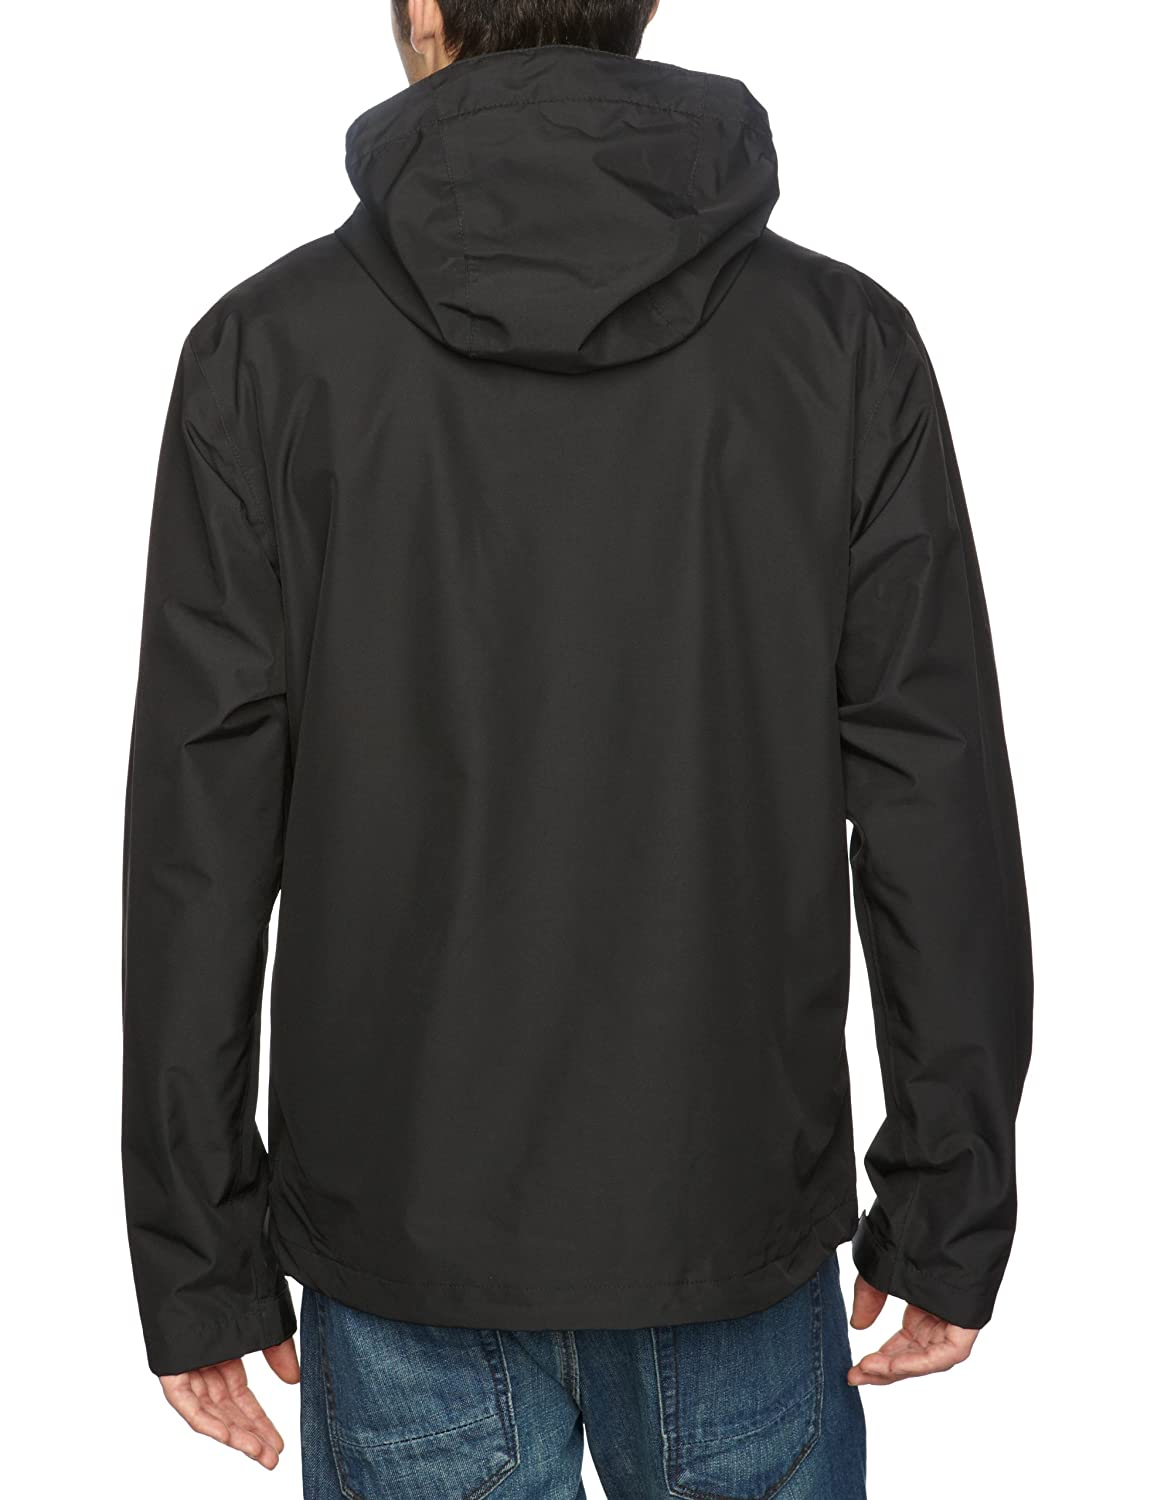 3633a9c245 Amazon.com: Helly Hansen Men's Seven J Waterproof, Windproof, and  Breathable Rain Jacket with Hood: Clothing